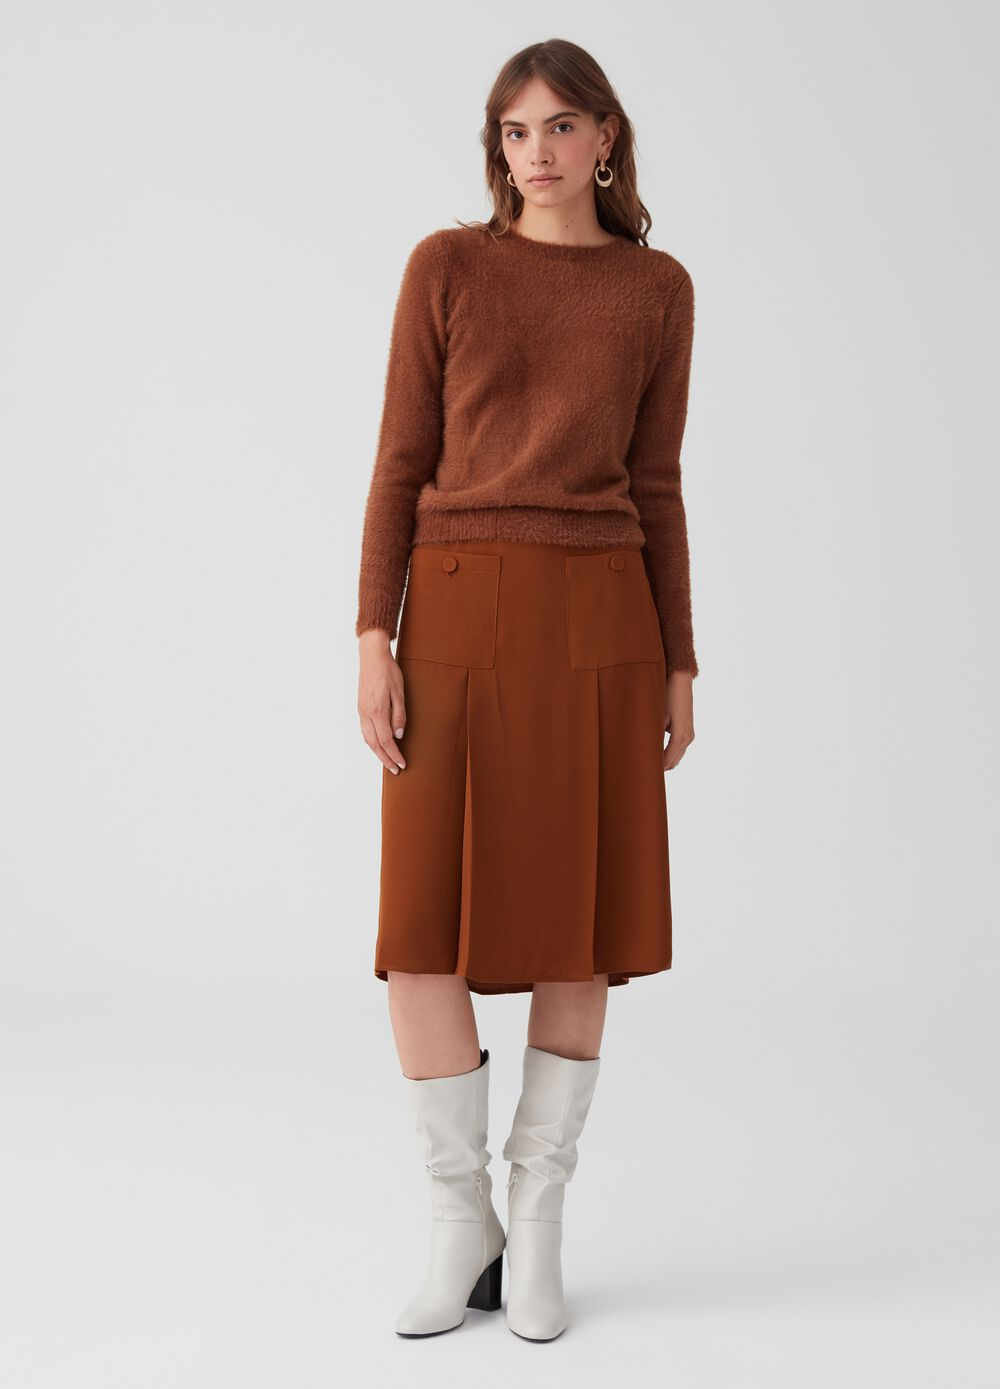 Solid colour skirt with pockets